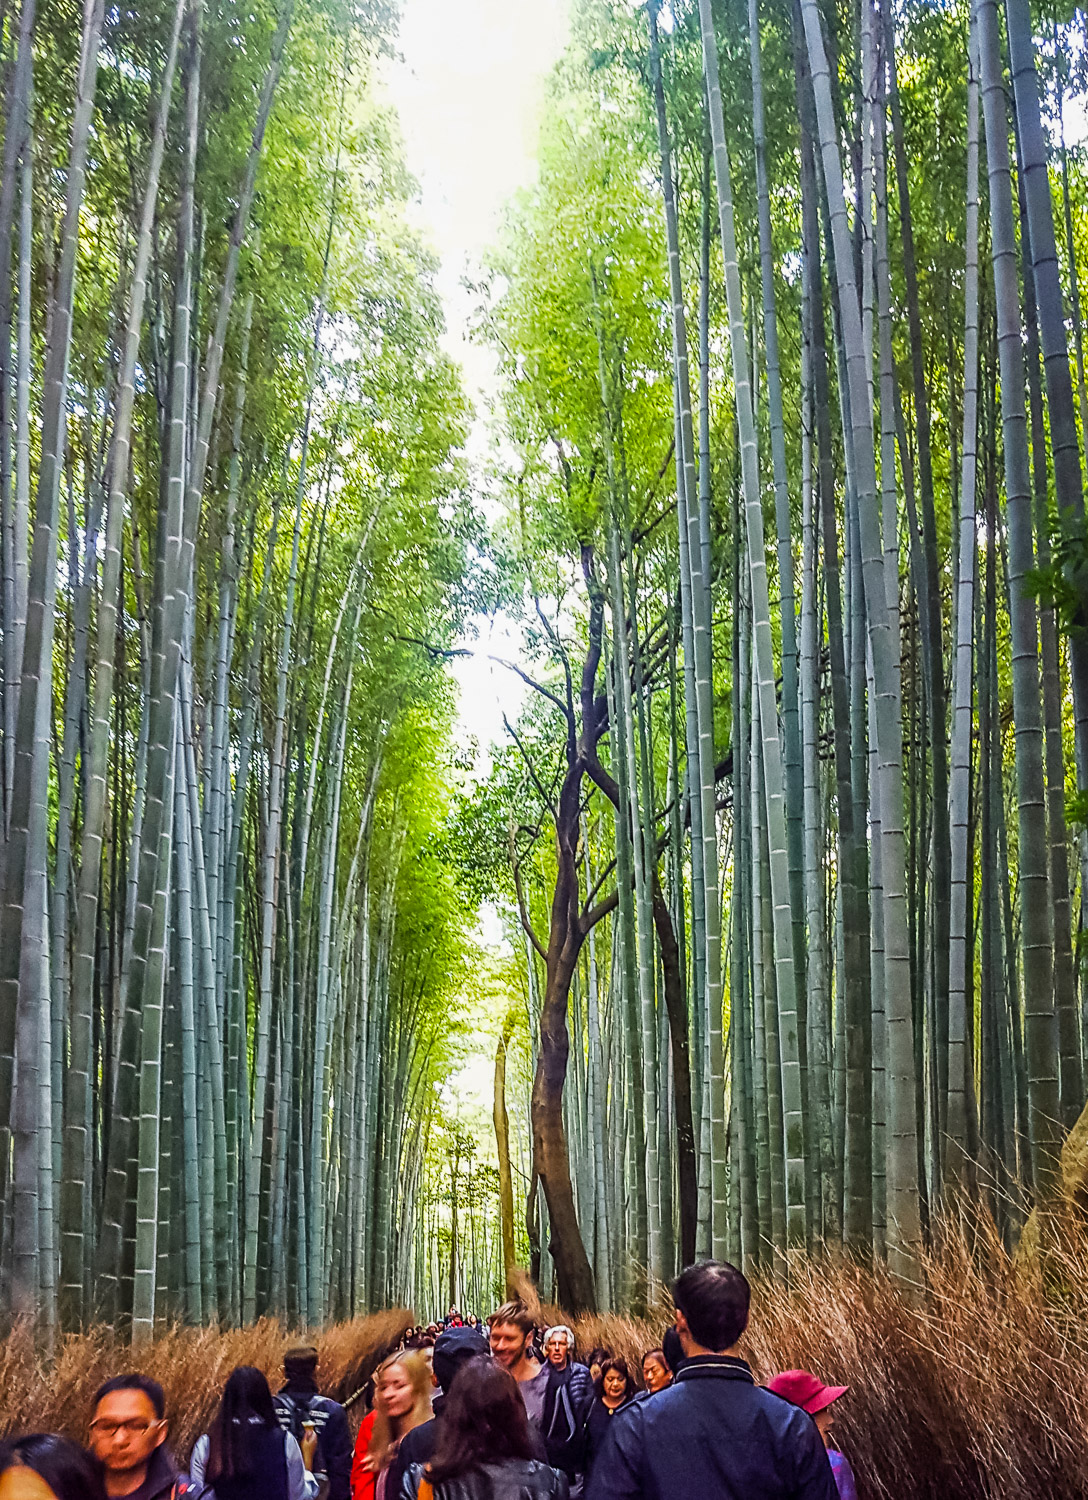 Arashiyama district and bamboo forest - Why You Should Experience Kyoto by Bicycle - The Wayward Post